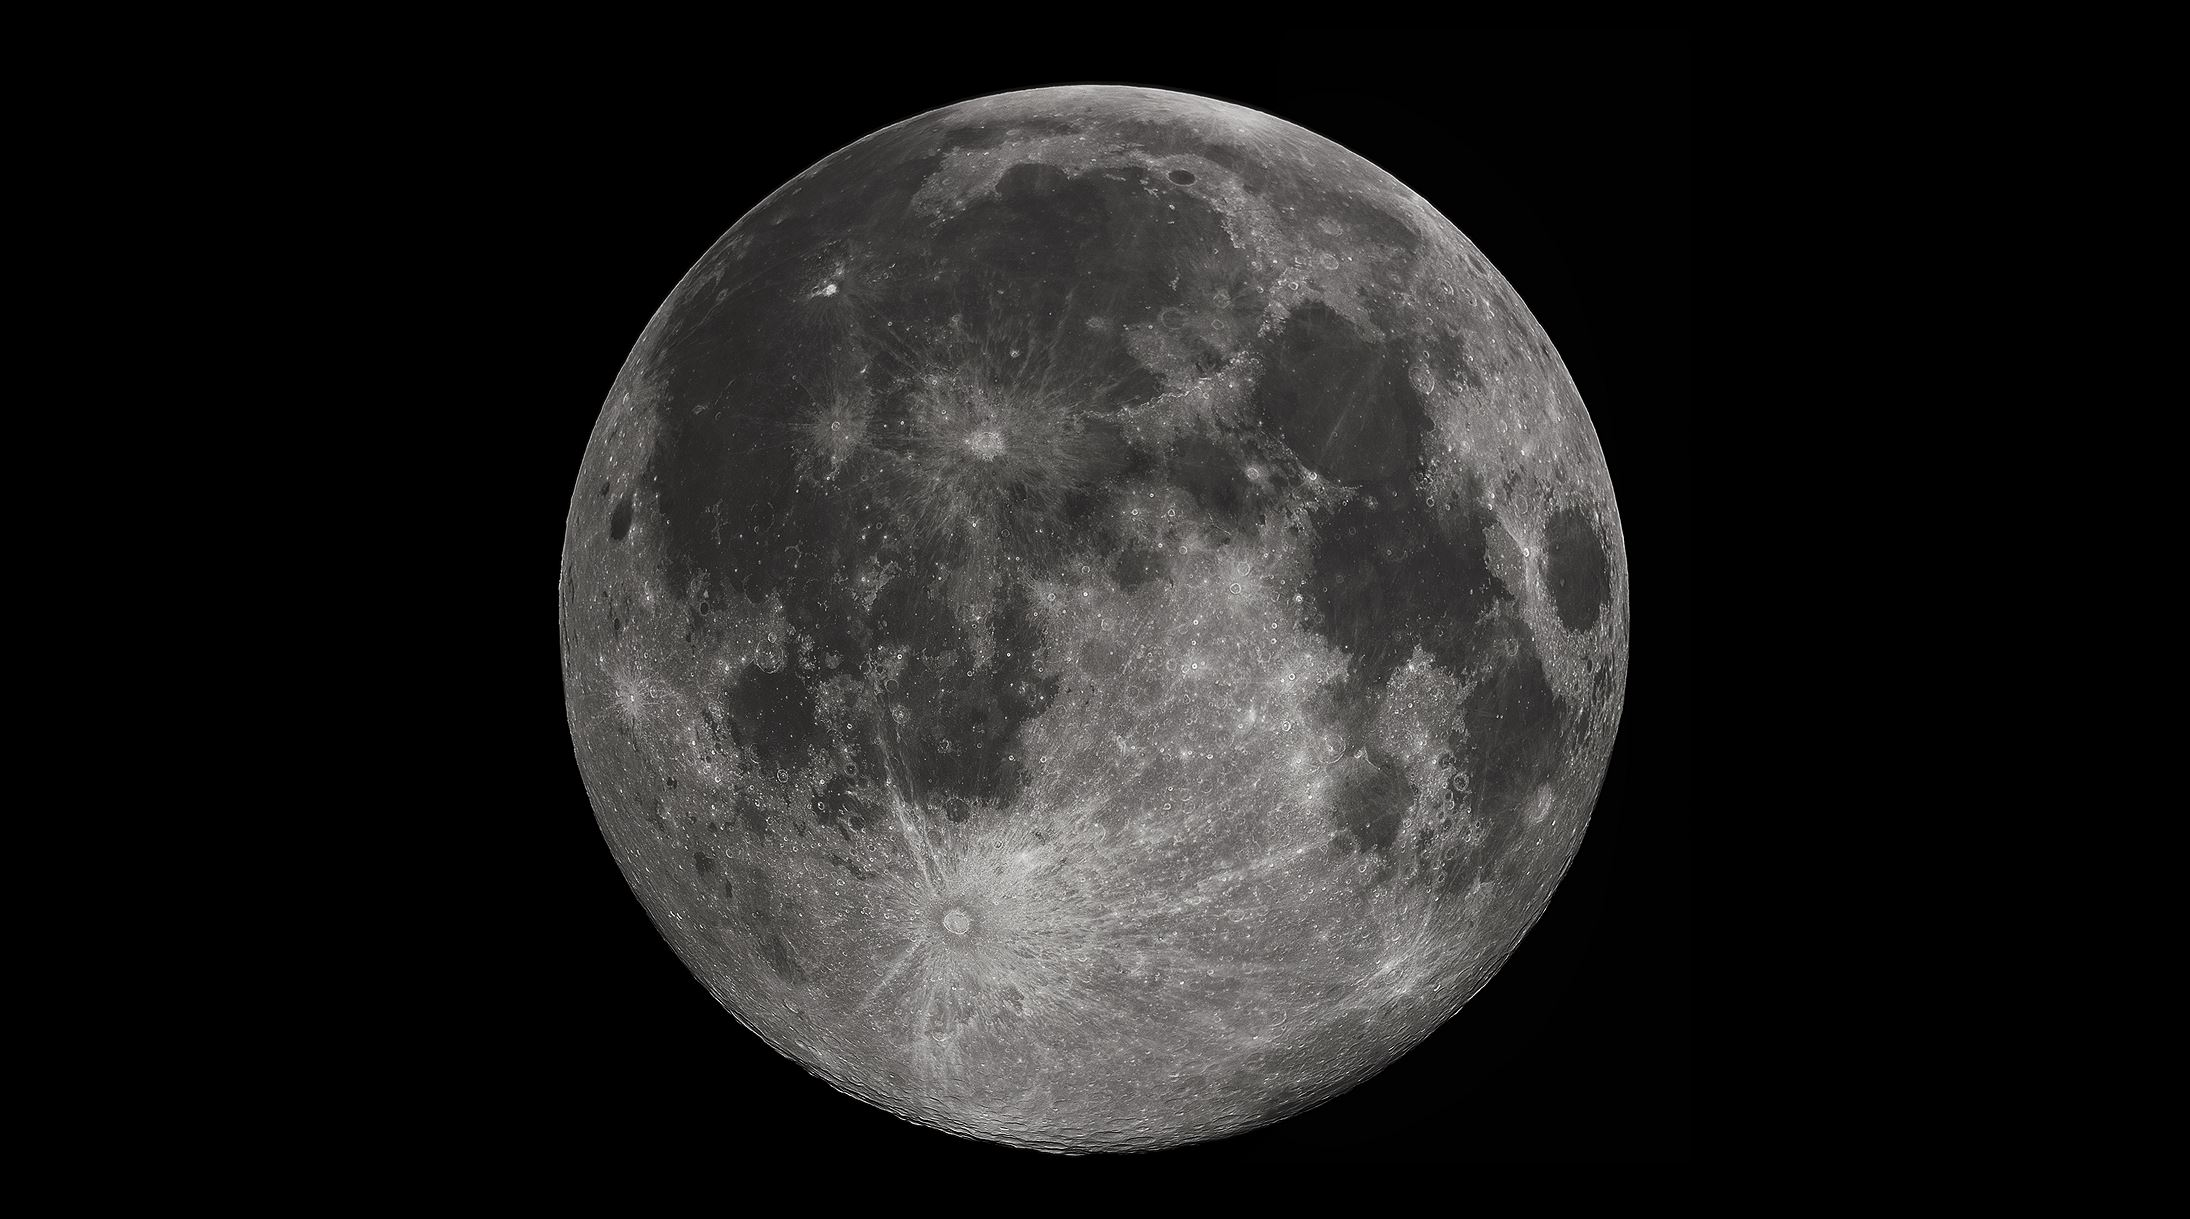 What will China discover on the far side of the moon? - Image Credit:  Gregory H. Revera via Wikimedia Commons